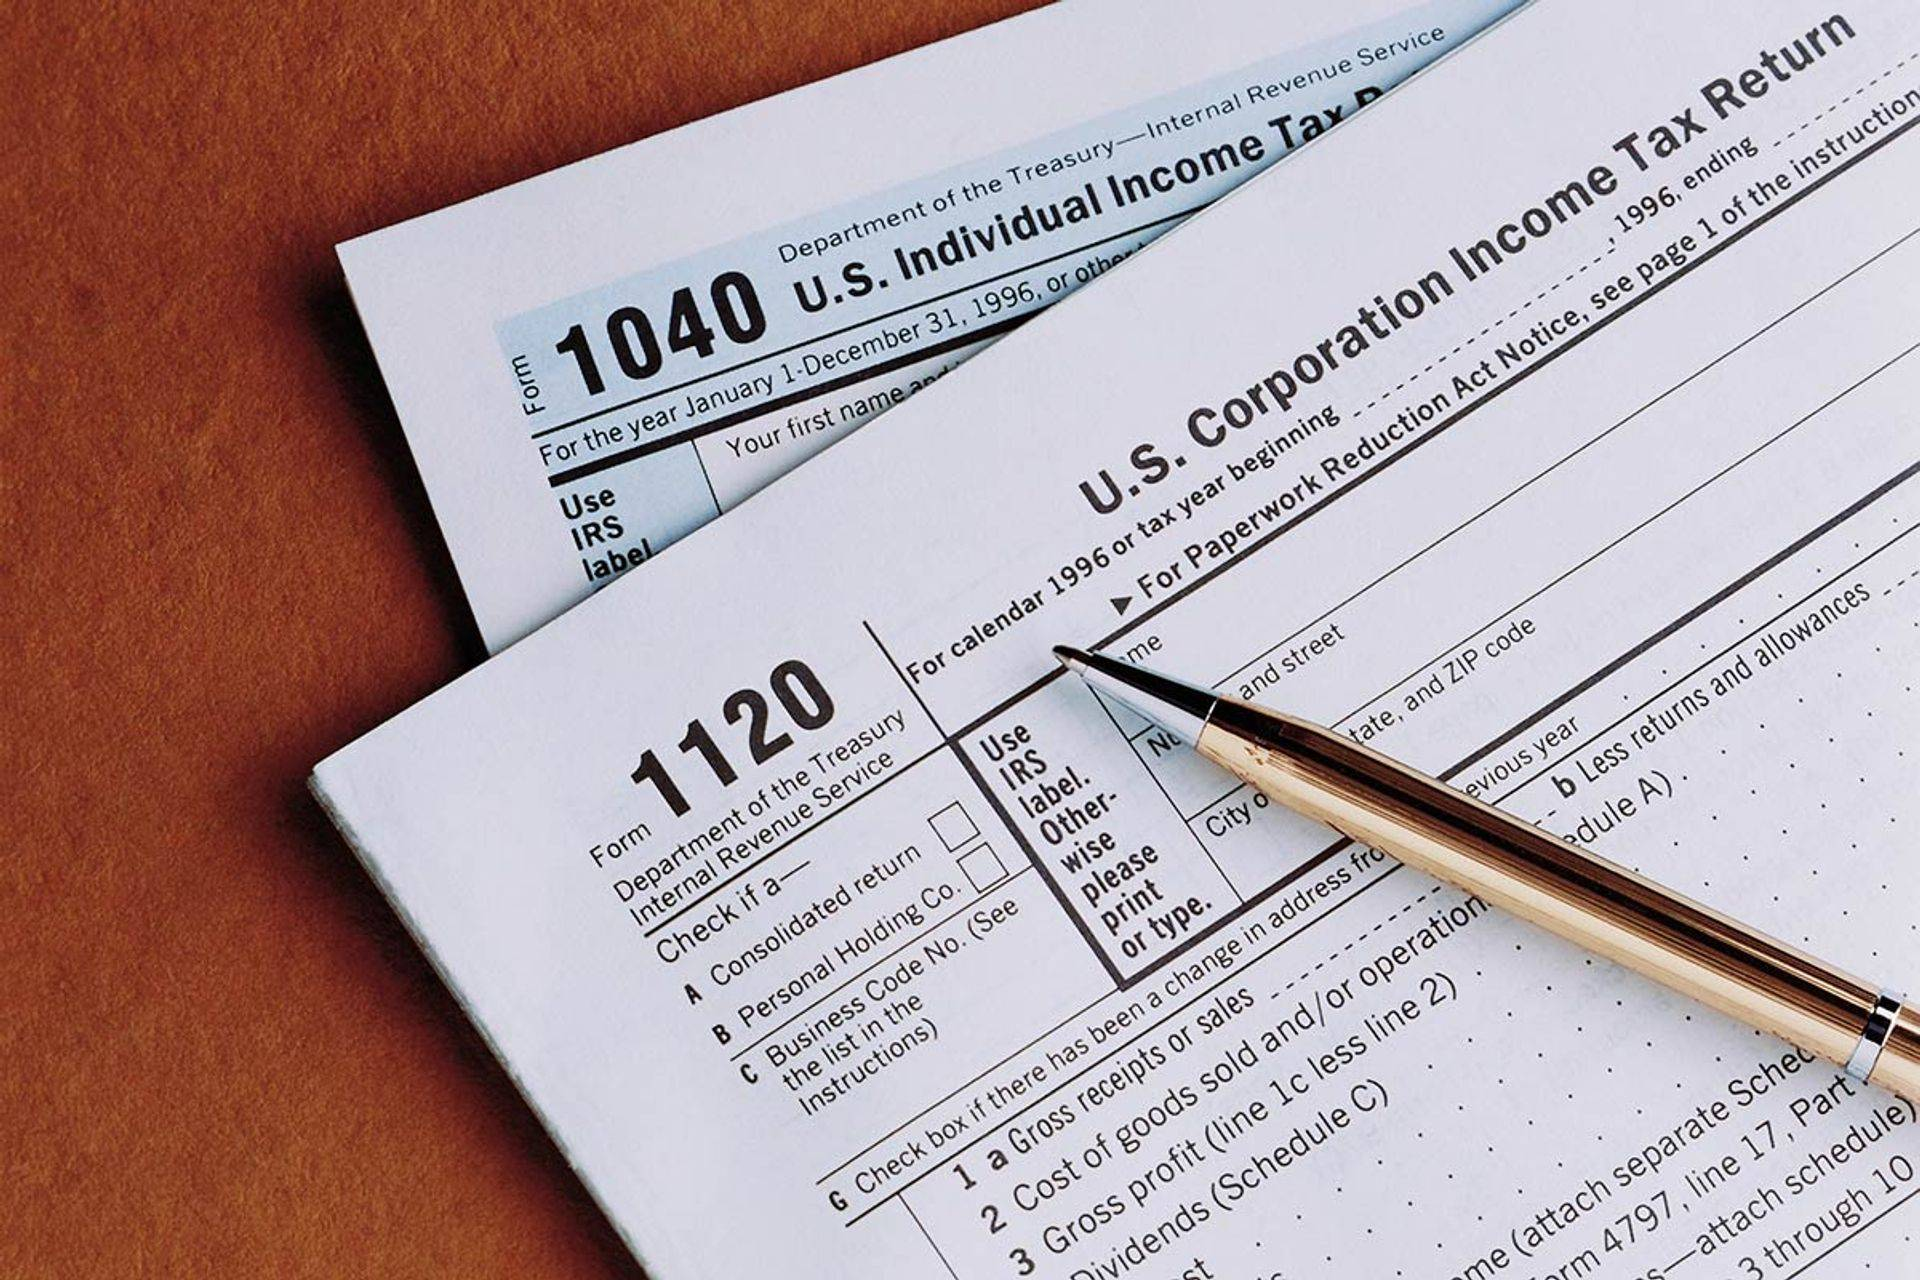 Form 1040 and NYS IT201